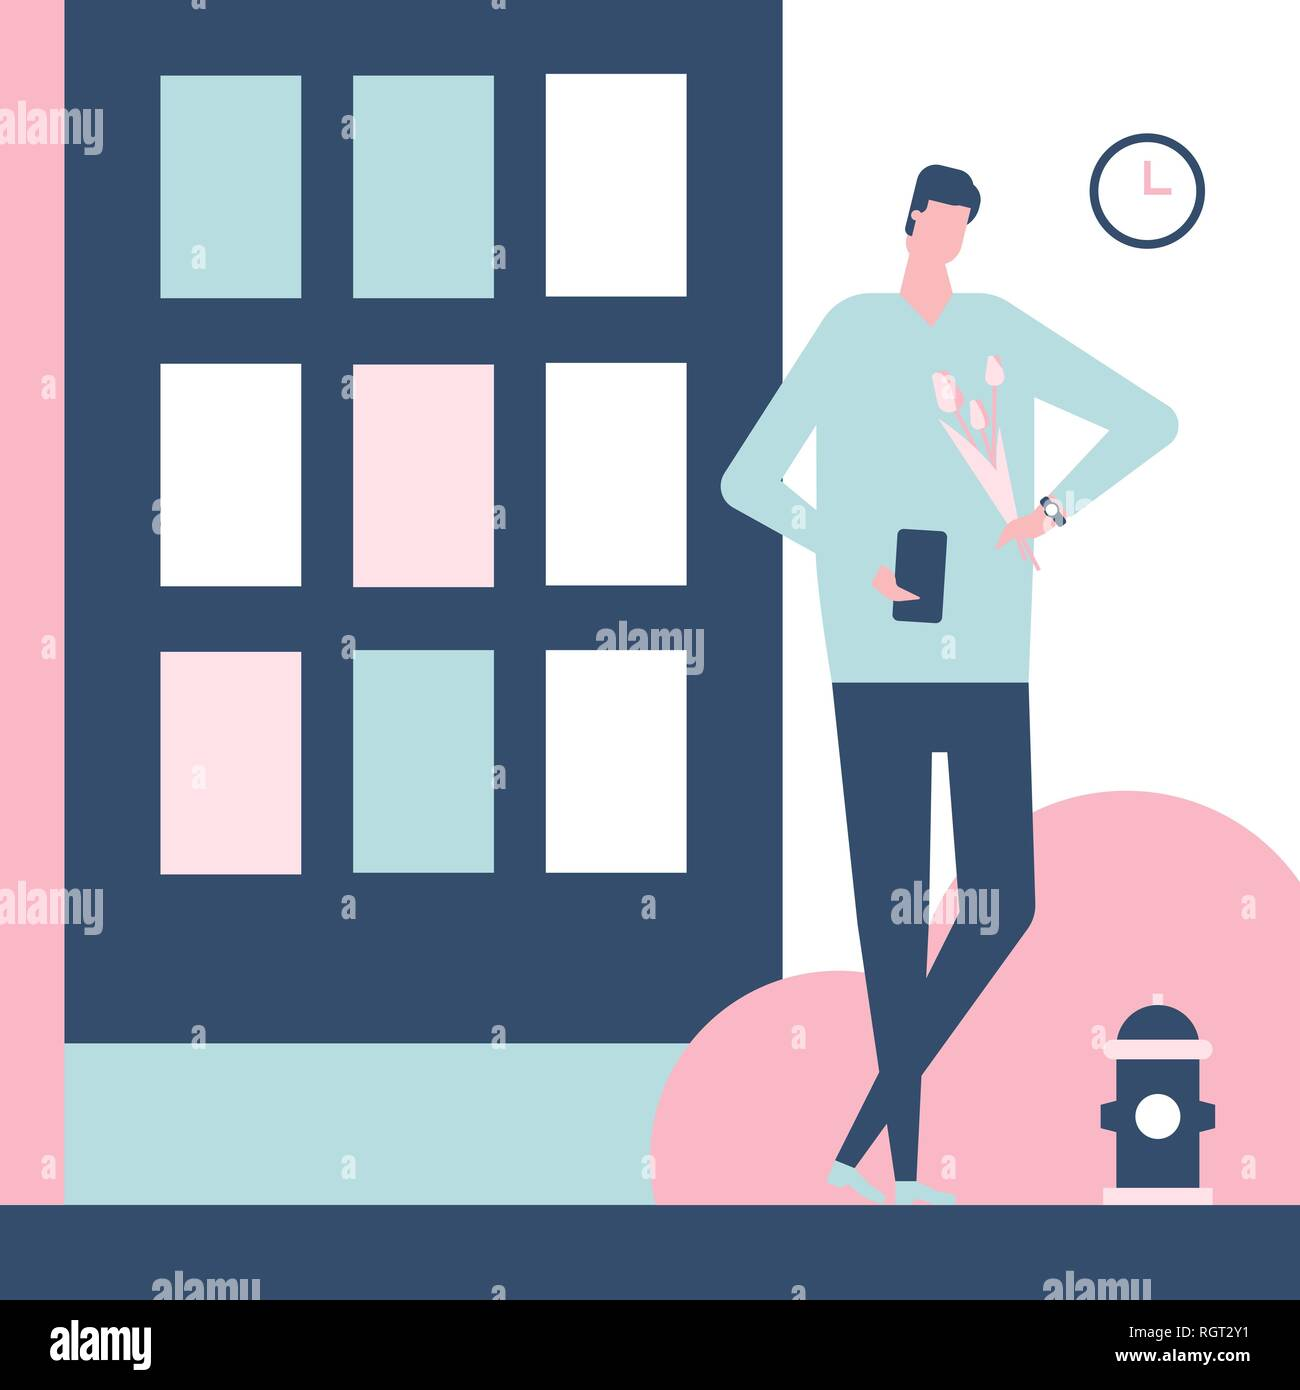 Dating app - flat design style colorful illustration Stock Vector